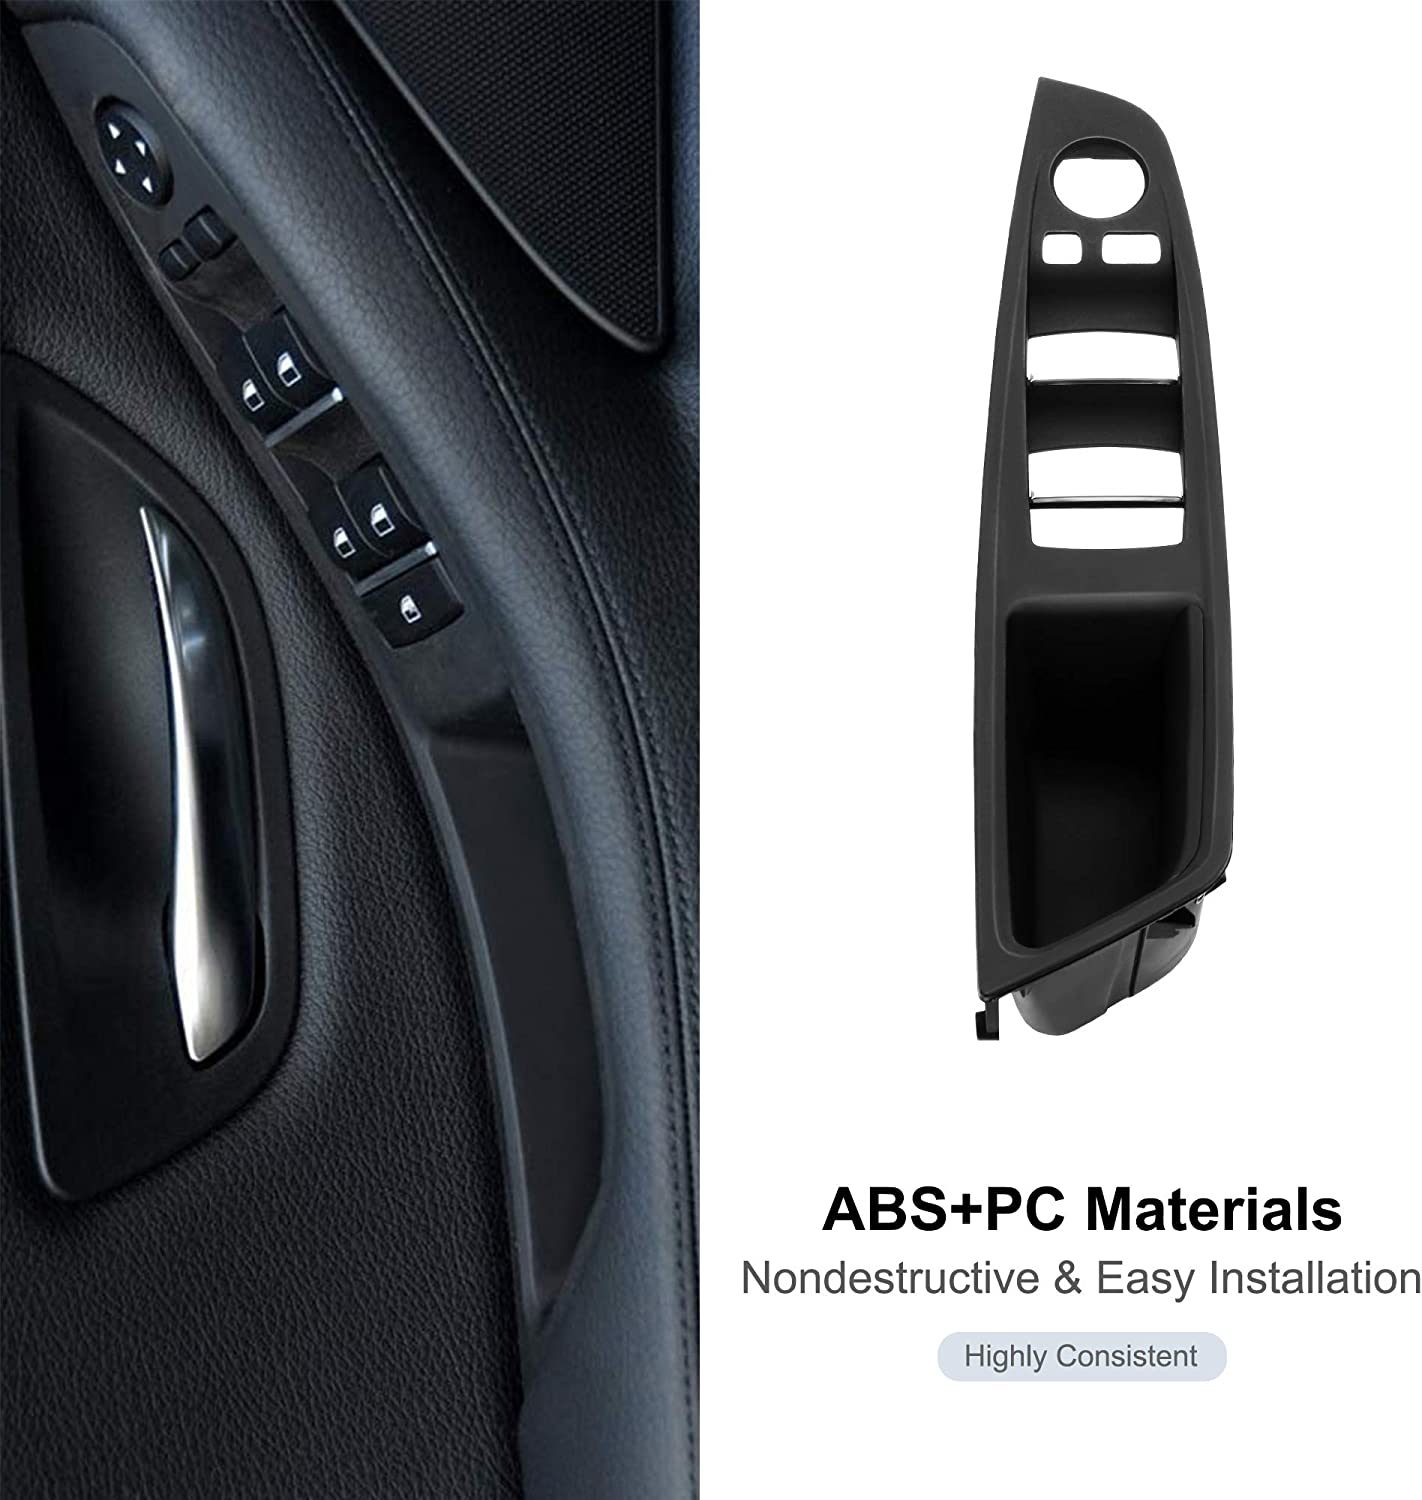 RDBS Driver Side Door Handle Black Window Switch Armrest Panel Inner Pull Handle Trim Panel Cover Fits for 2010-2016 BMW 5 Series 520 523 525 528 530 535 F10 F11